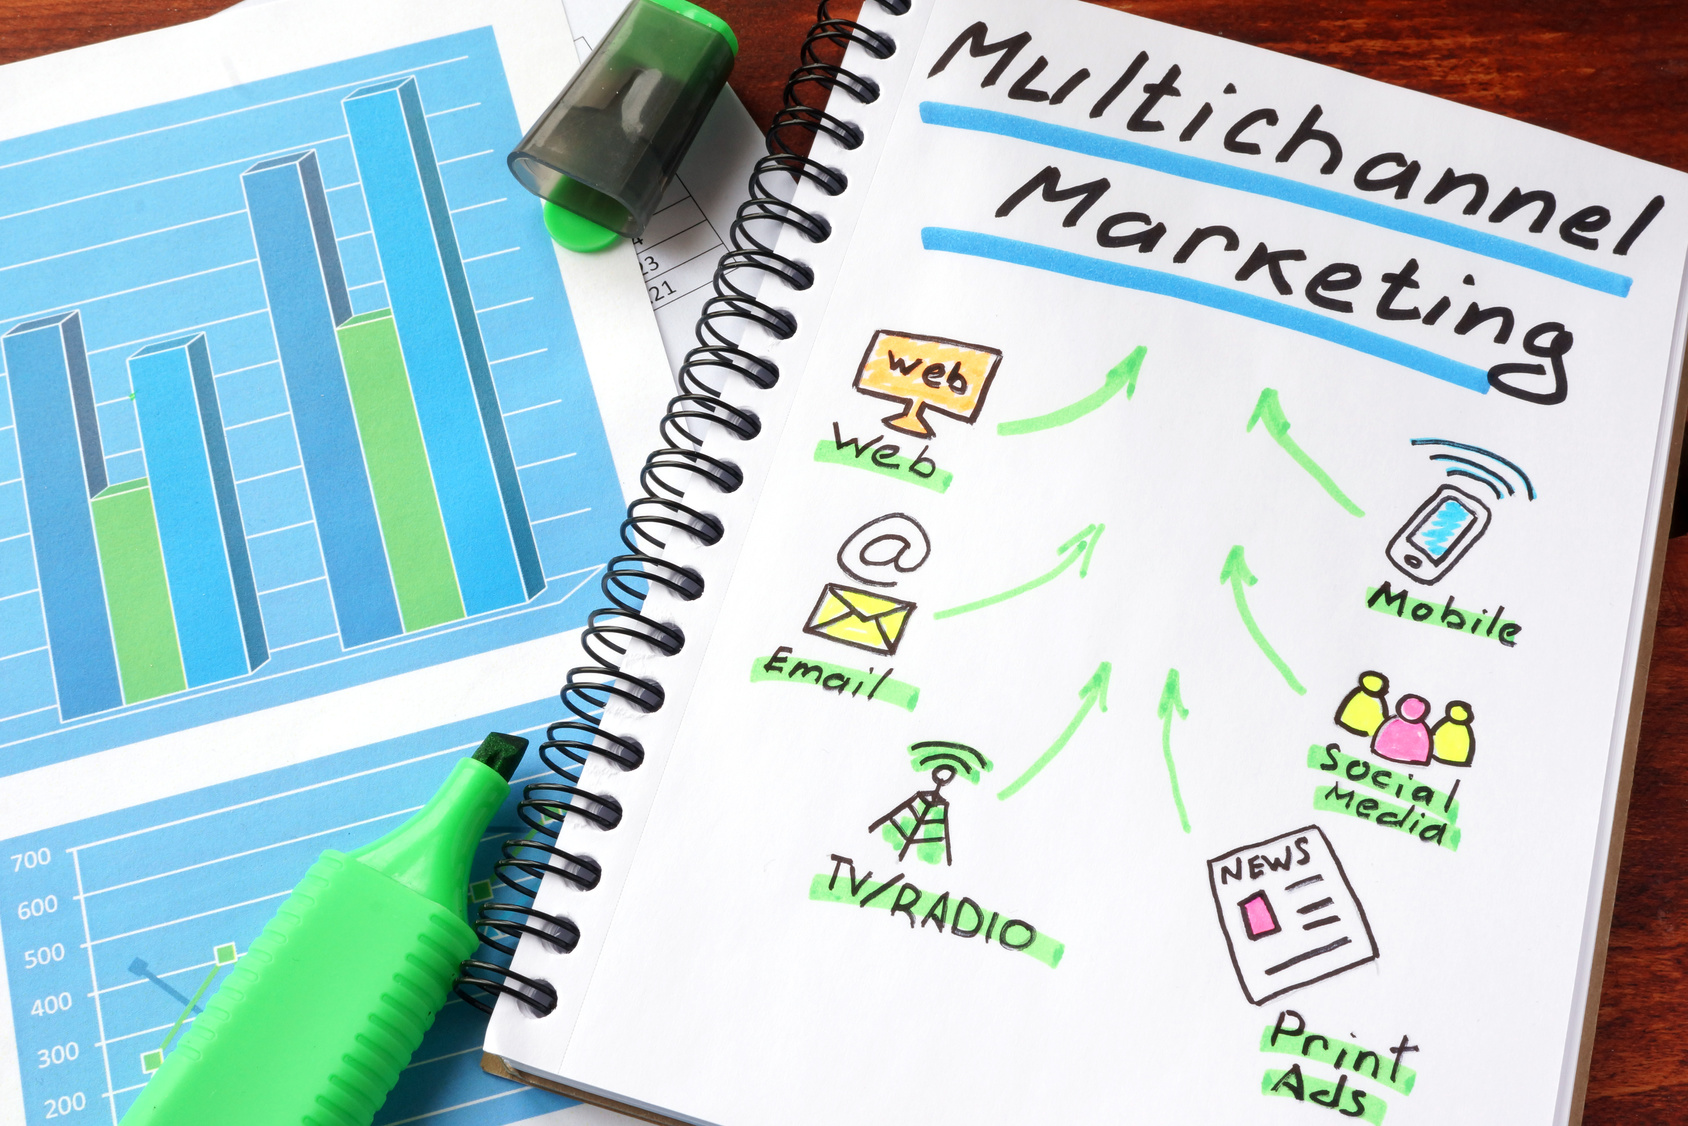 Multi channel marketing written in a notebook and marker.